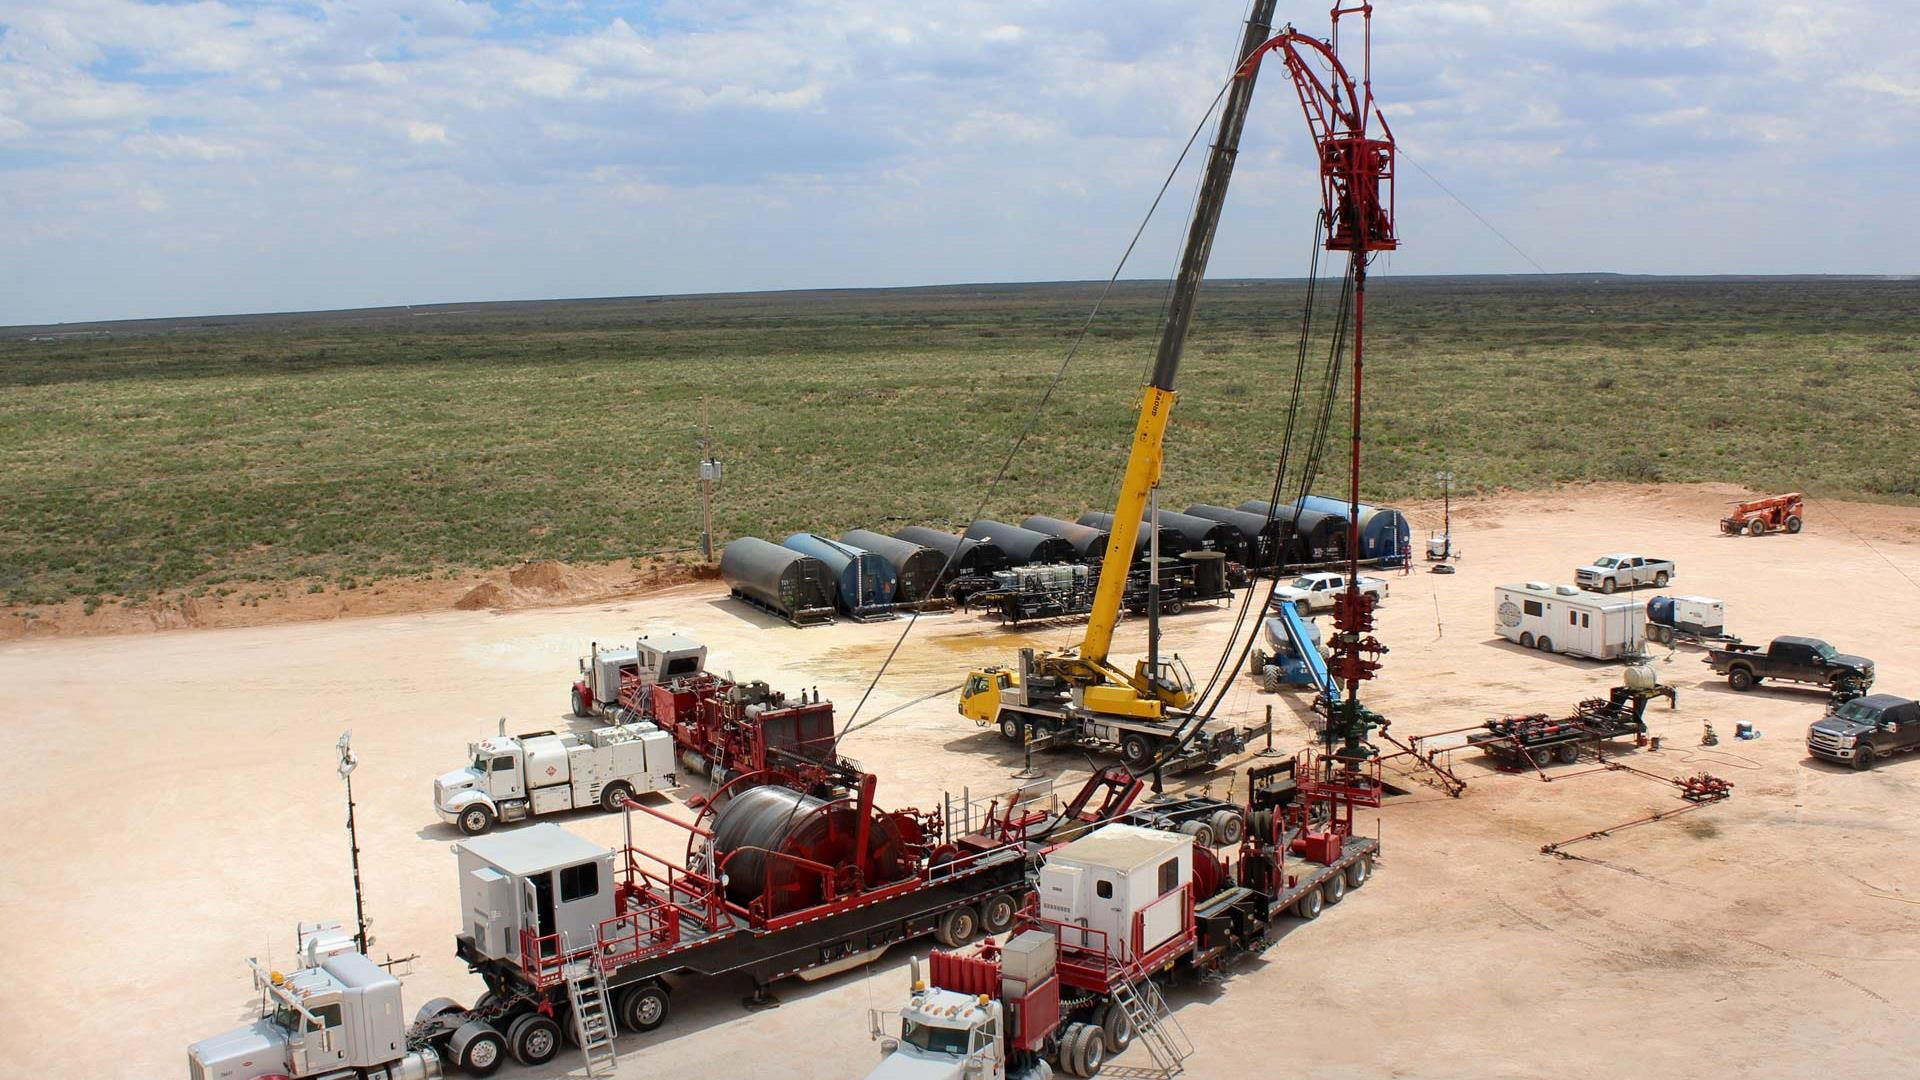 Aerial view of Condition-Based Maintenance System